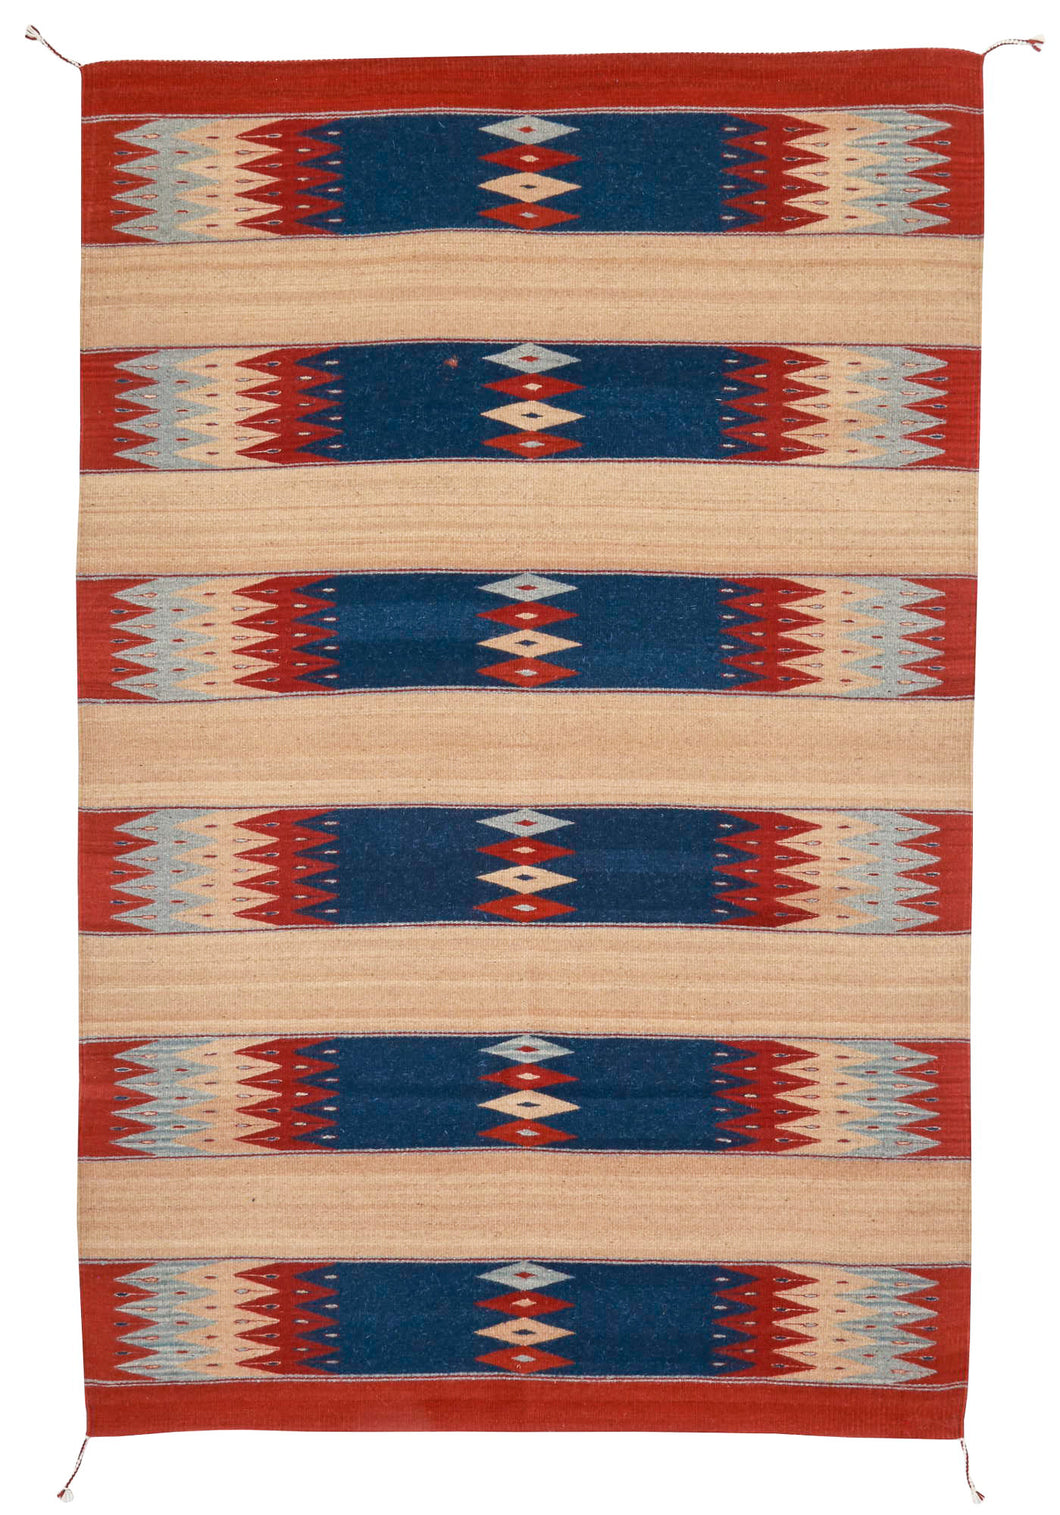 Handwoven Zapotec Indian Rug - Papalote del Mar Wool Oaxacan Textile